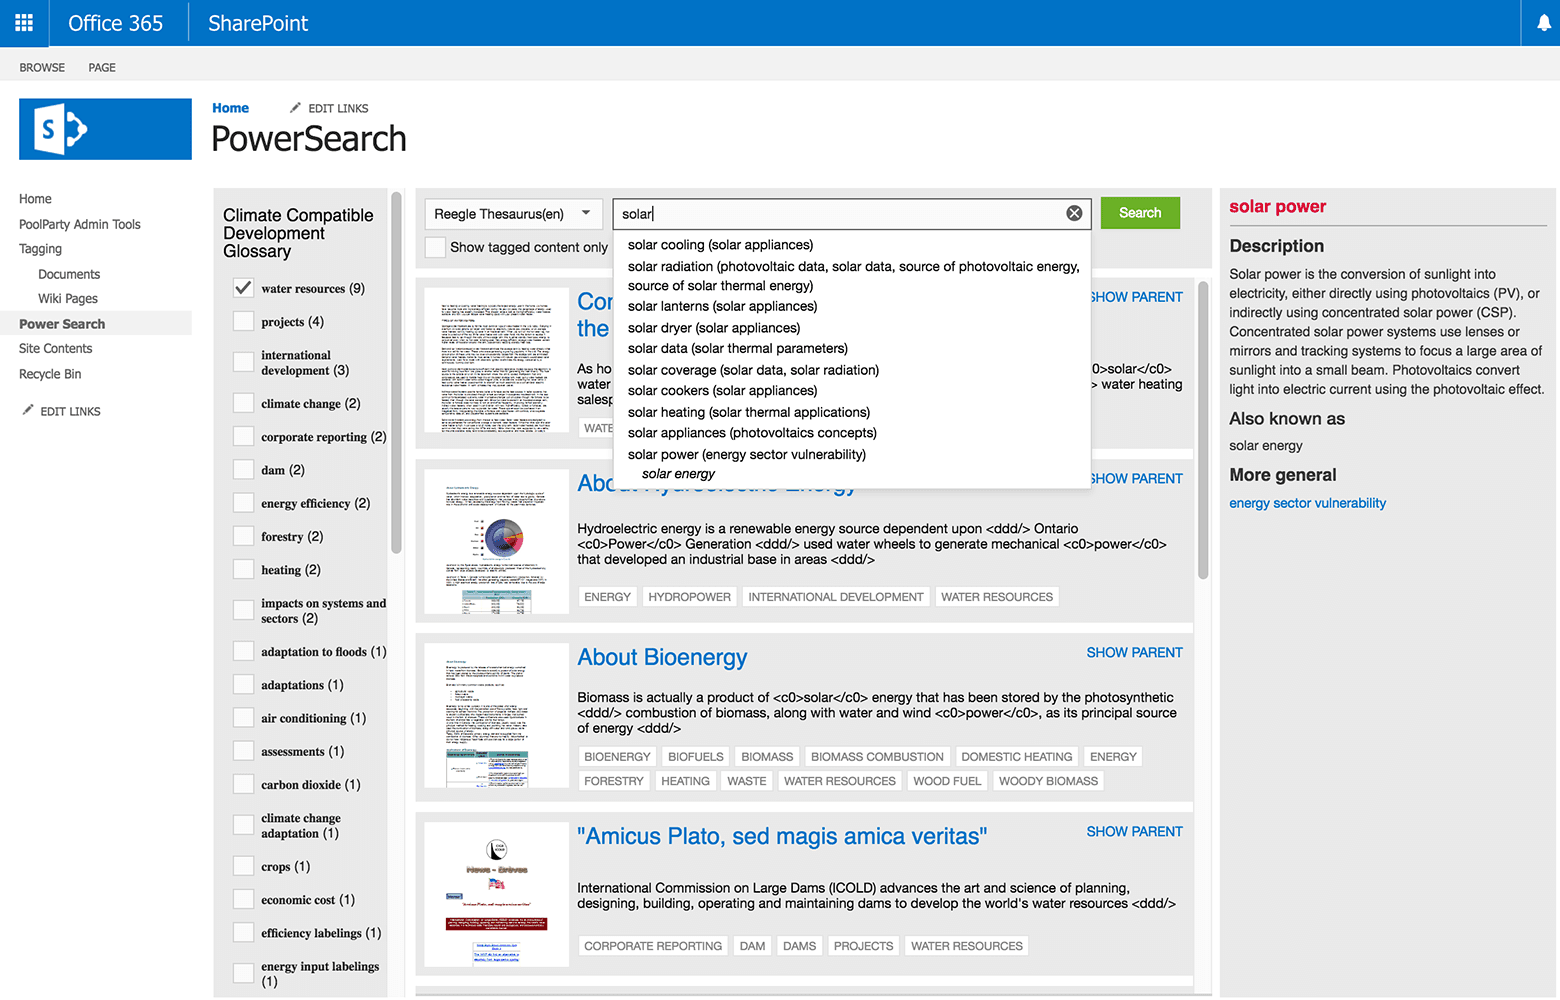 PoolParty Office 365 semantic search image